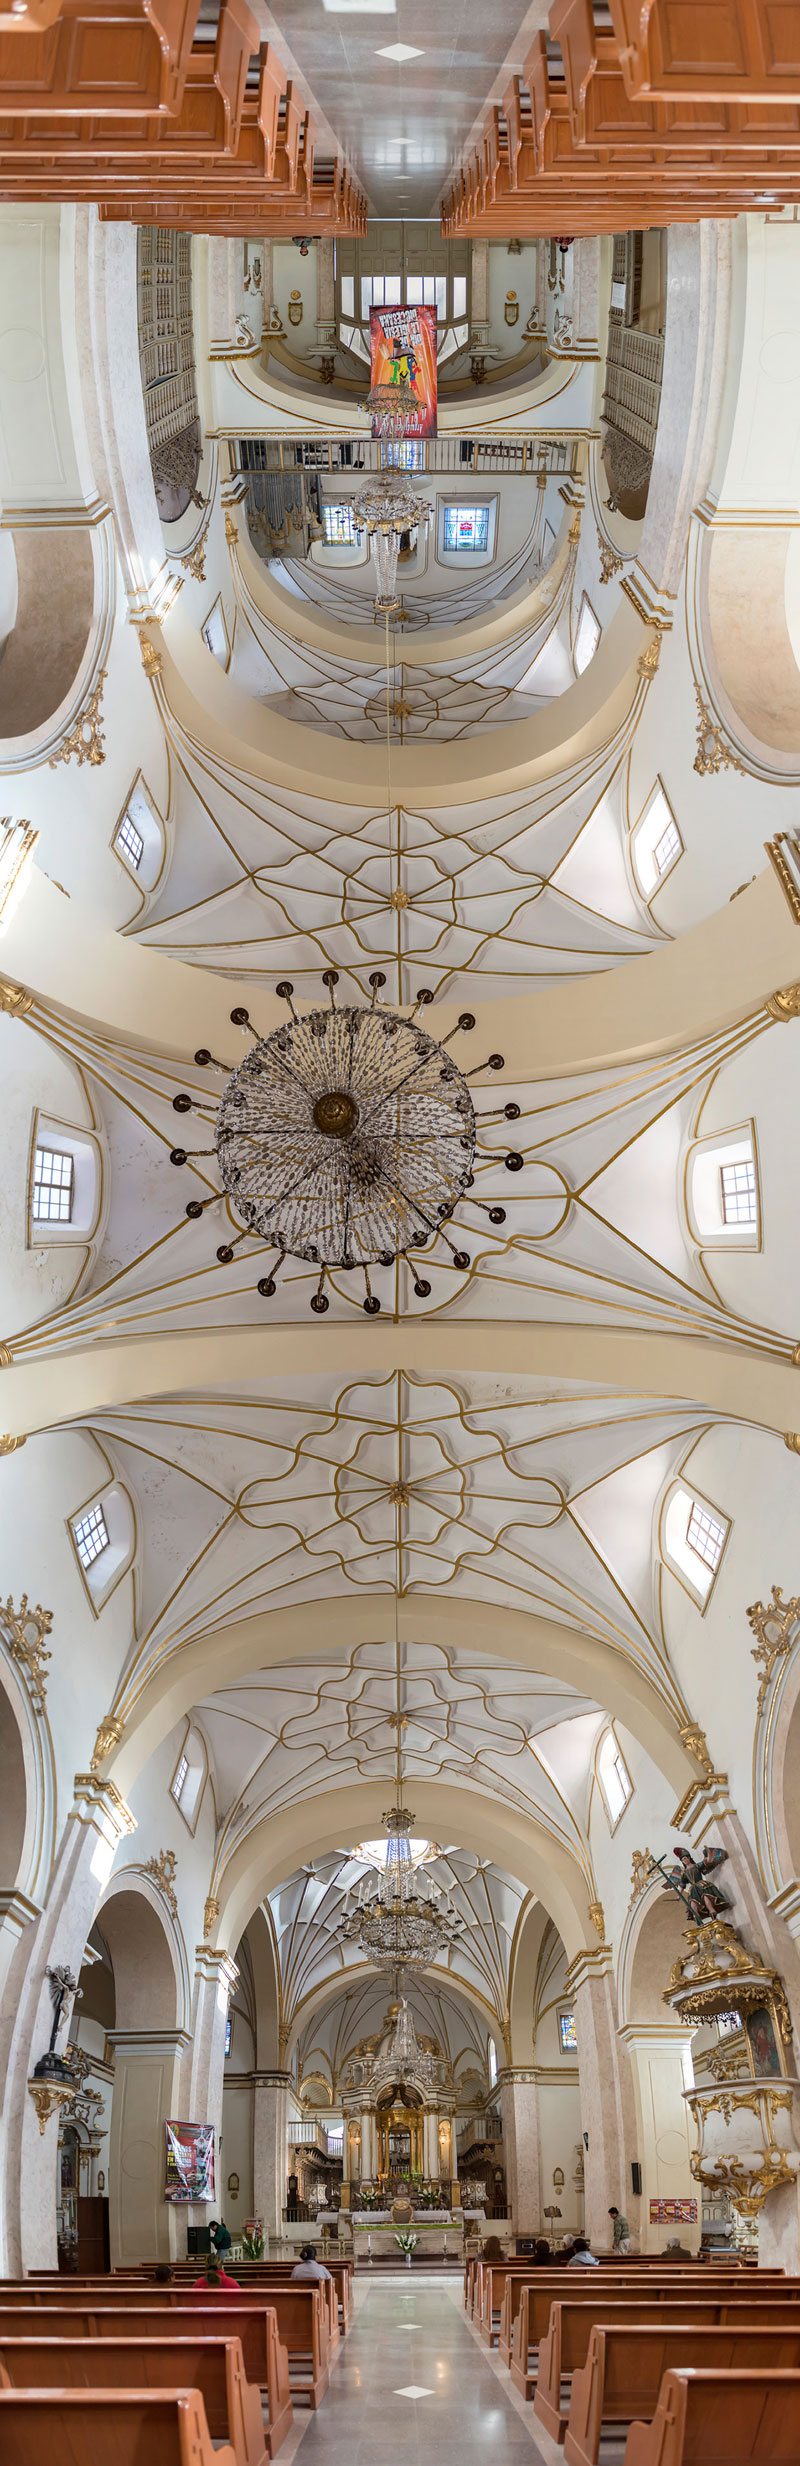 Vertical Panoramas of Church Ceilings Around the World (3)